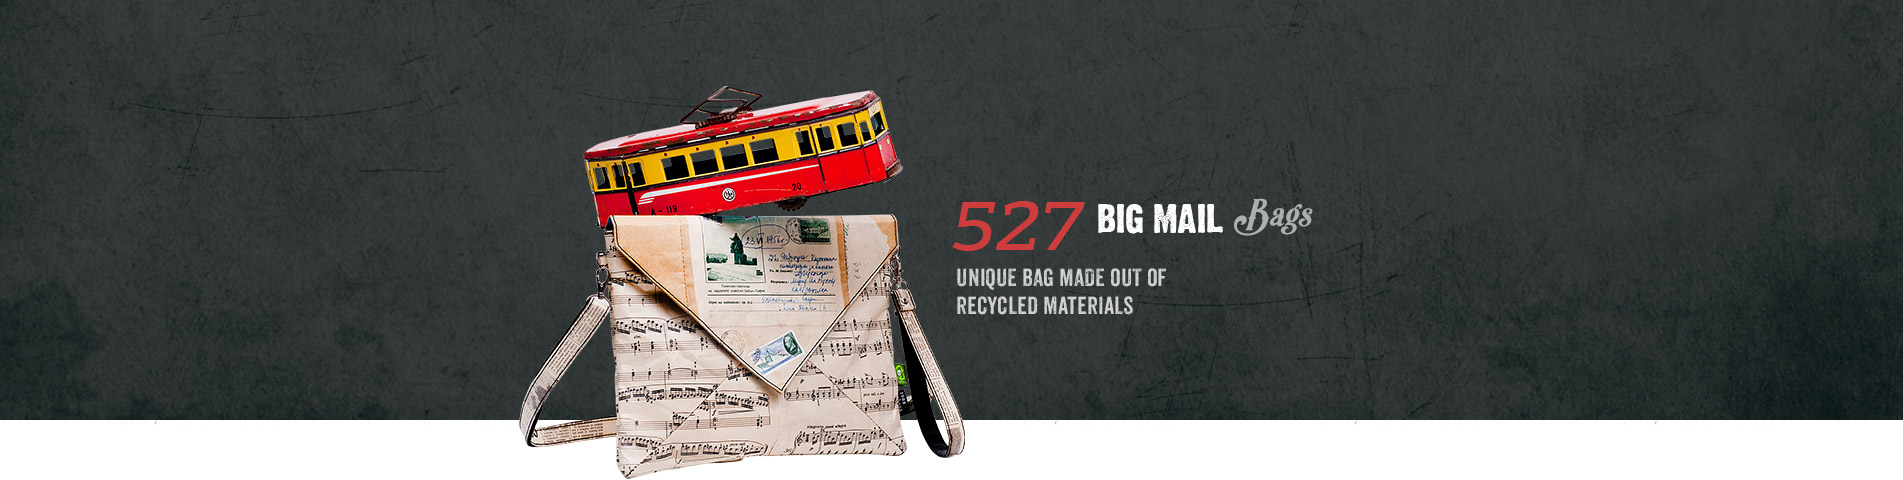 527 Big Mail Bags